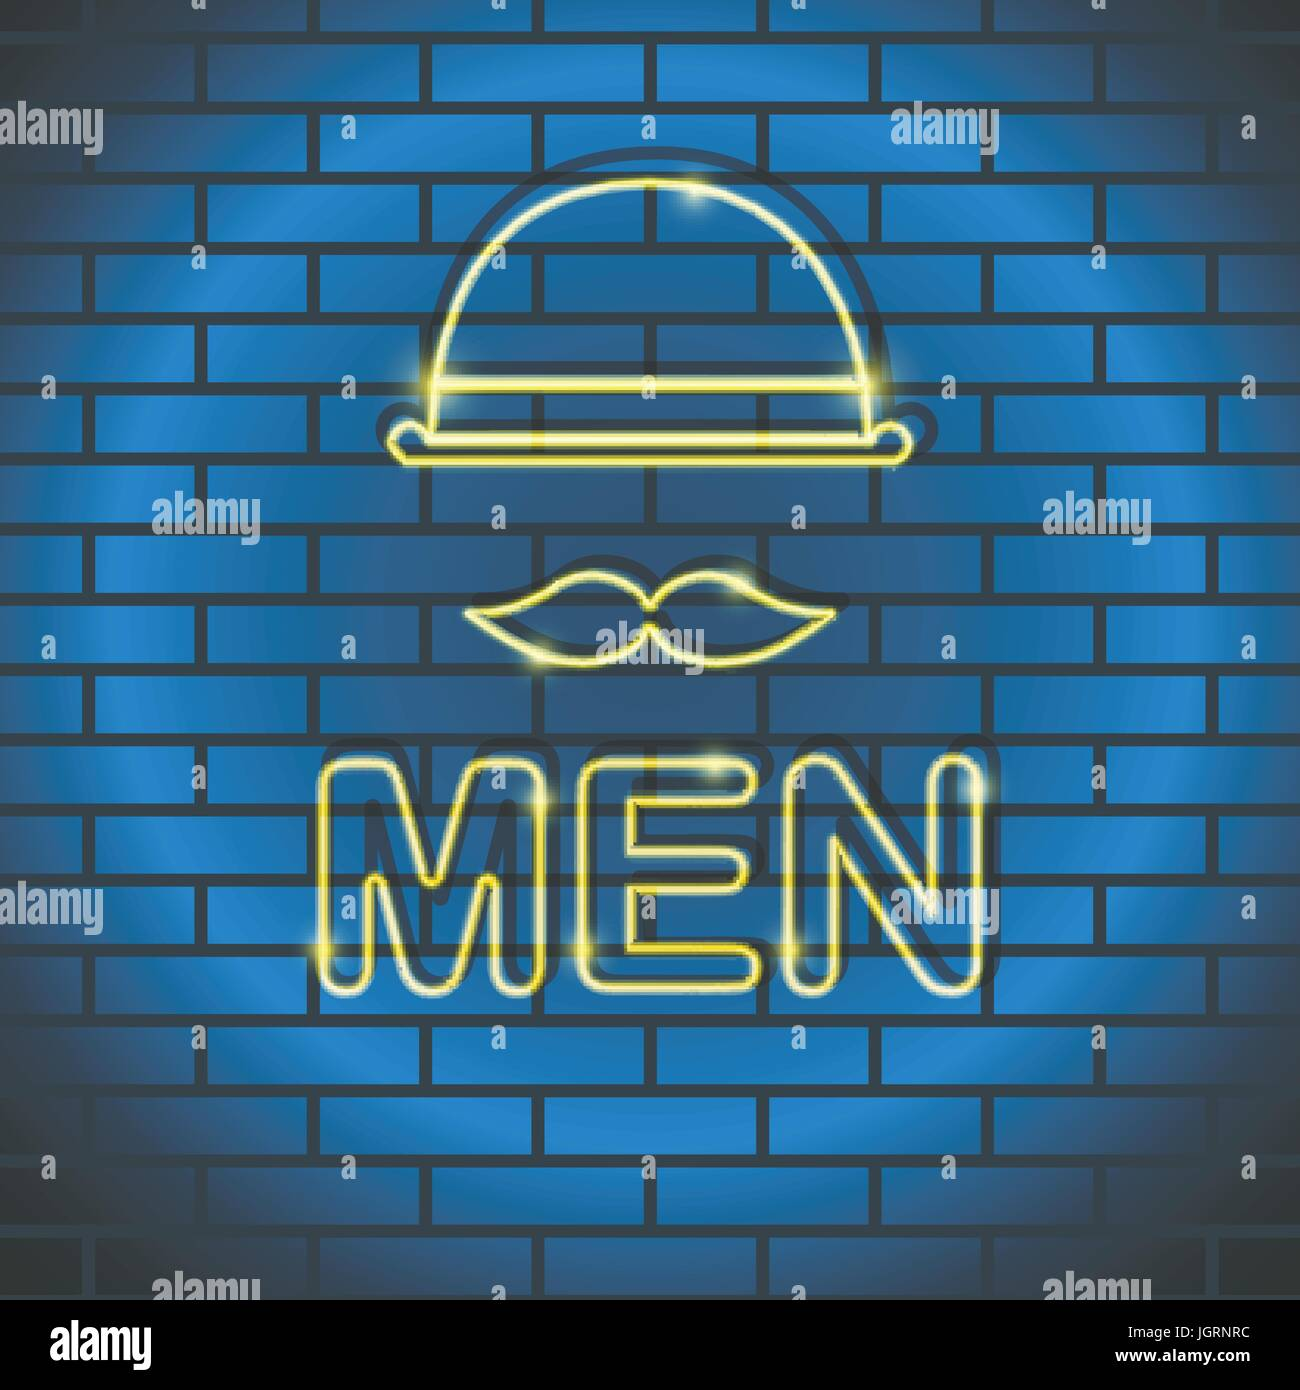 Neon icon Vector illustration Neon lamp yellow color in the form of a man with a mustache, a bowler hat on a brick - Stock Image